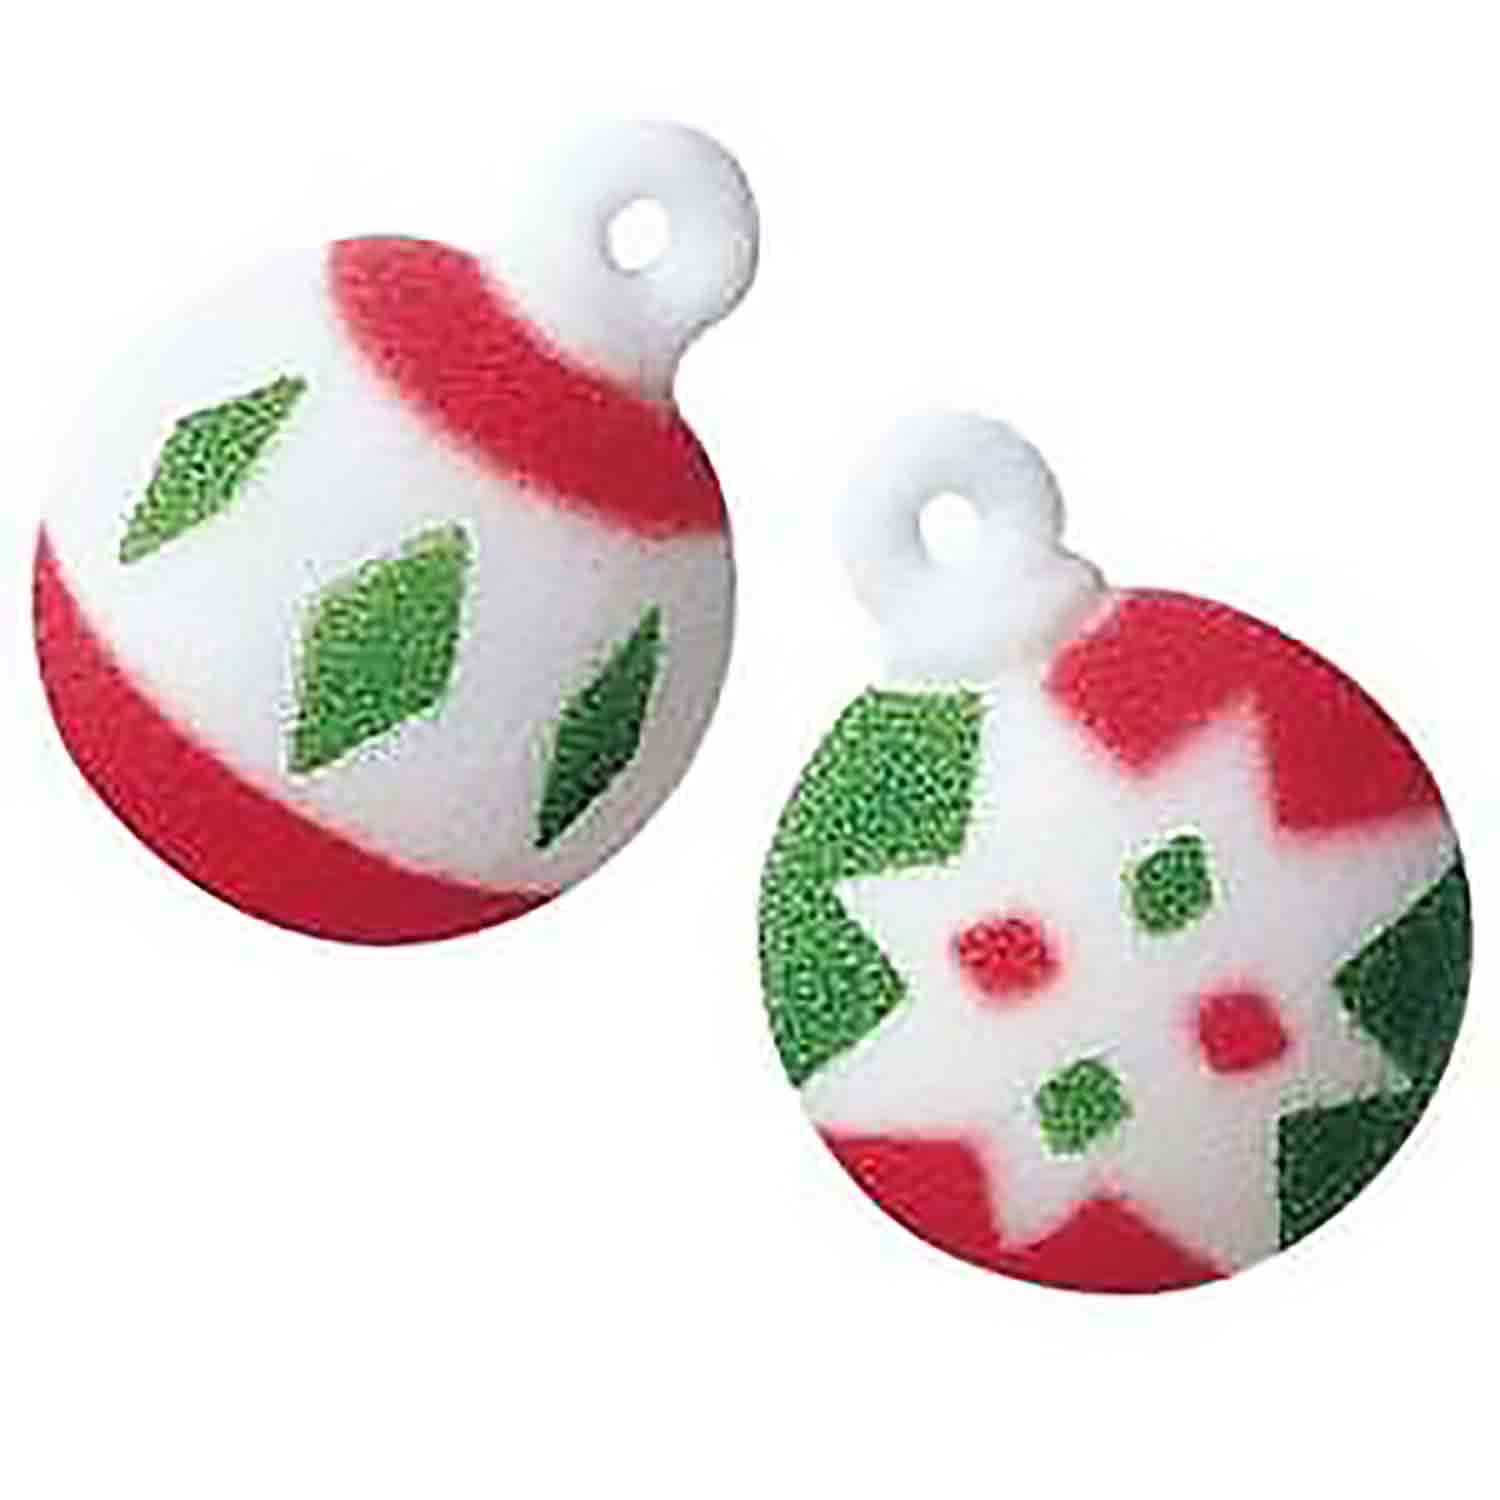 Dec-Ons® Molded Sugar - Ornaments